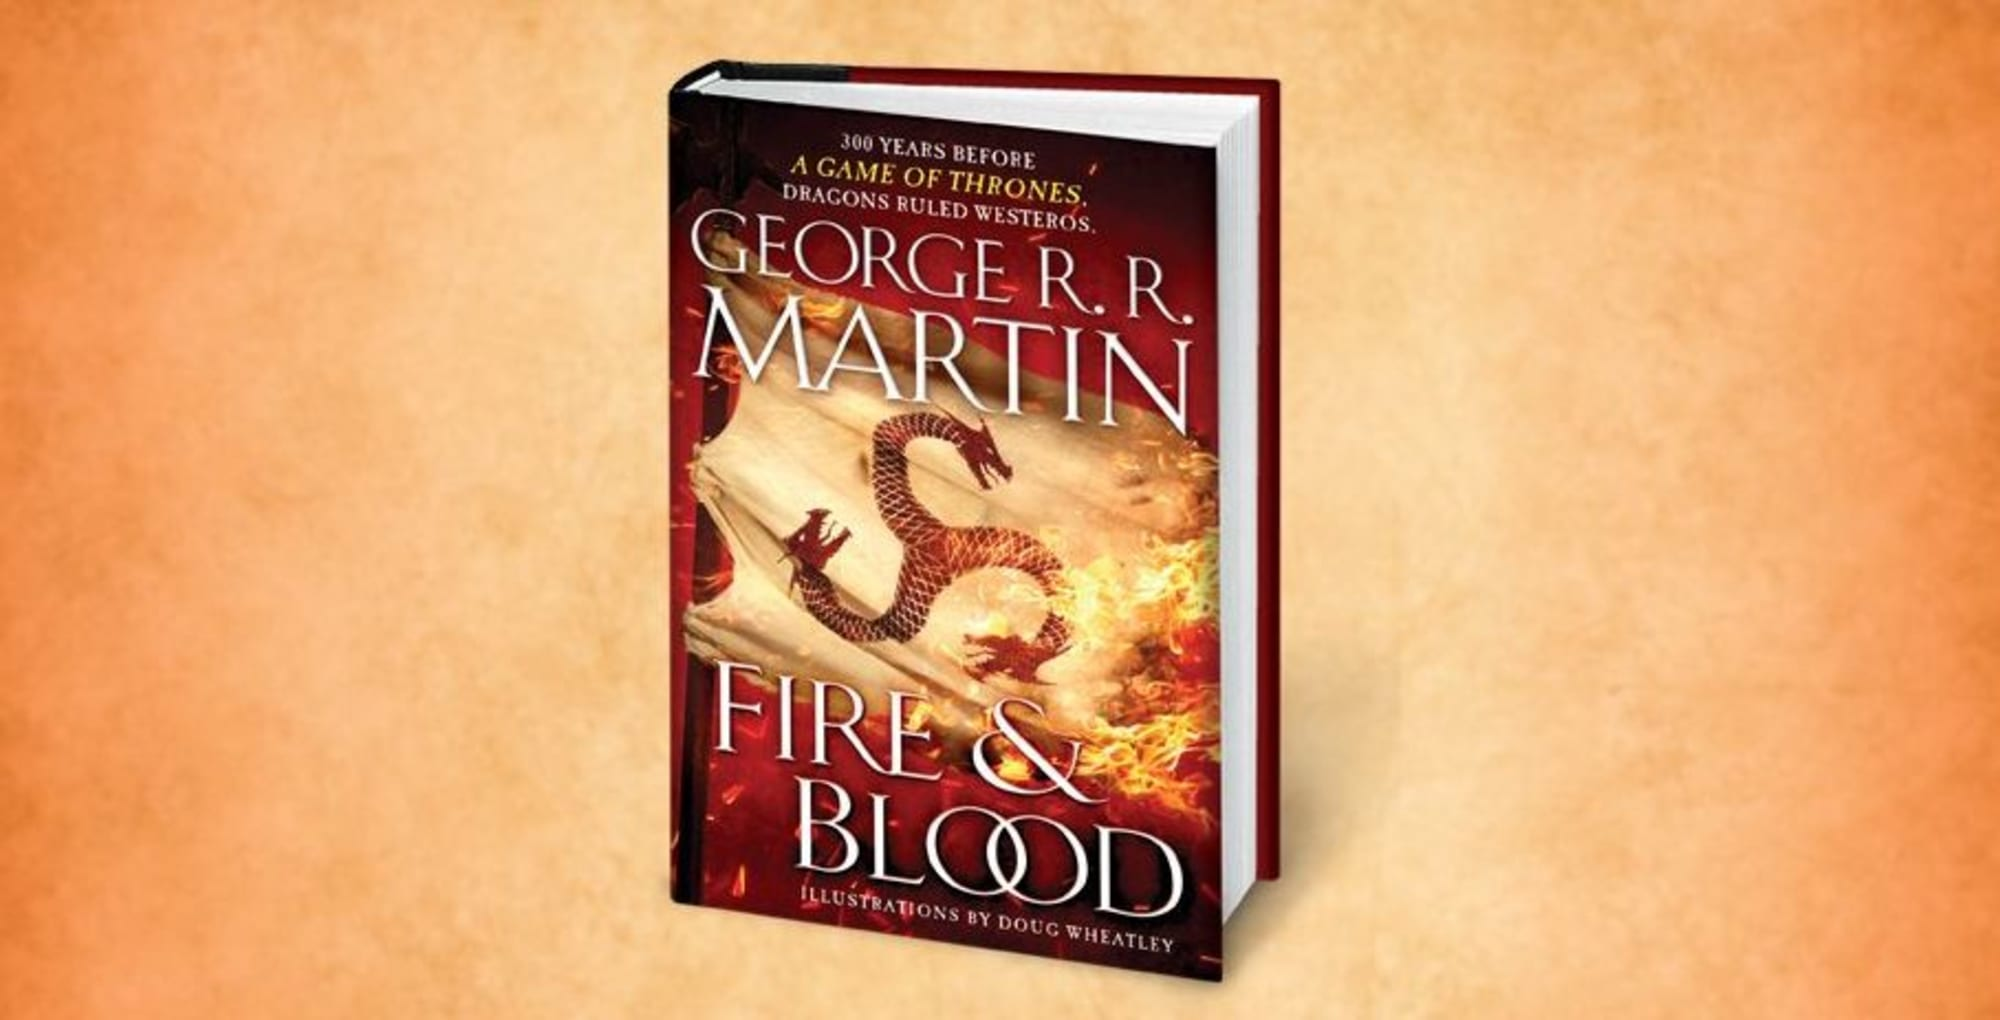 George RR Martin was Busy in other Projects